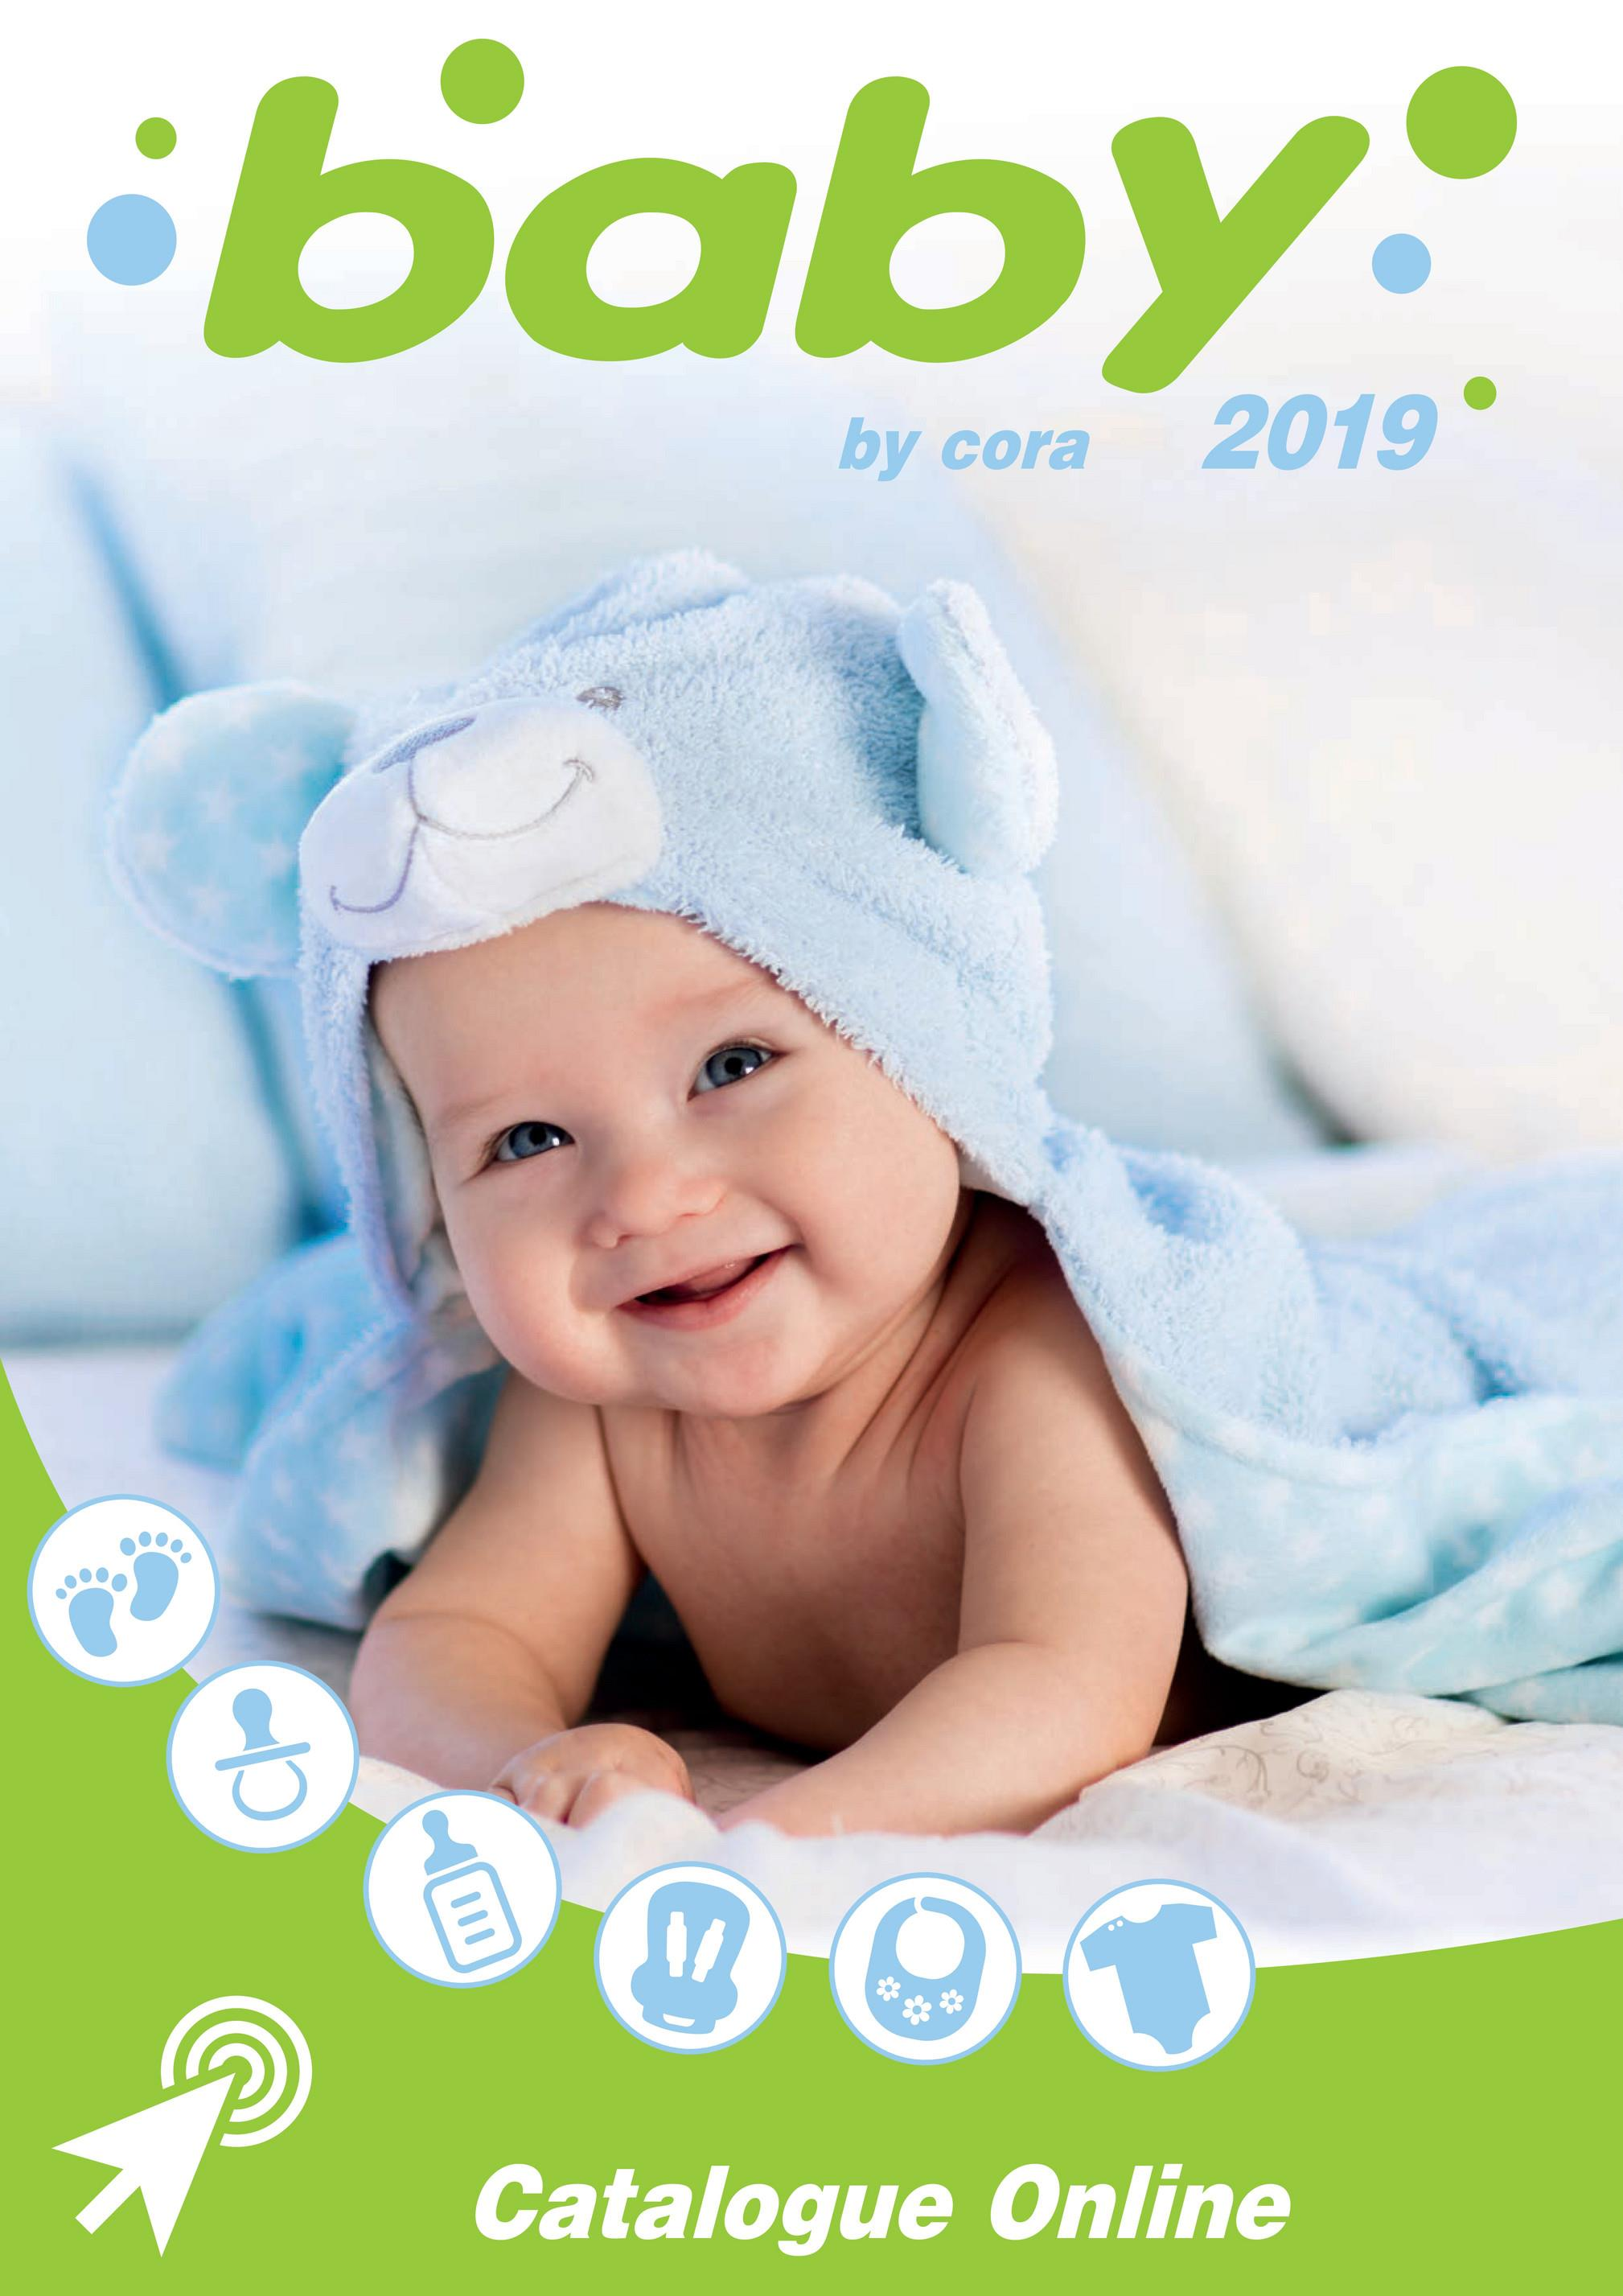 baby by cora Catalogue Online